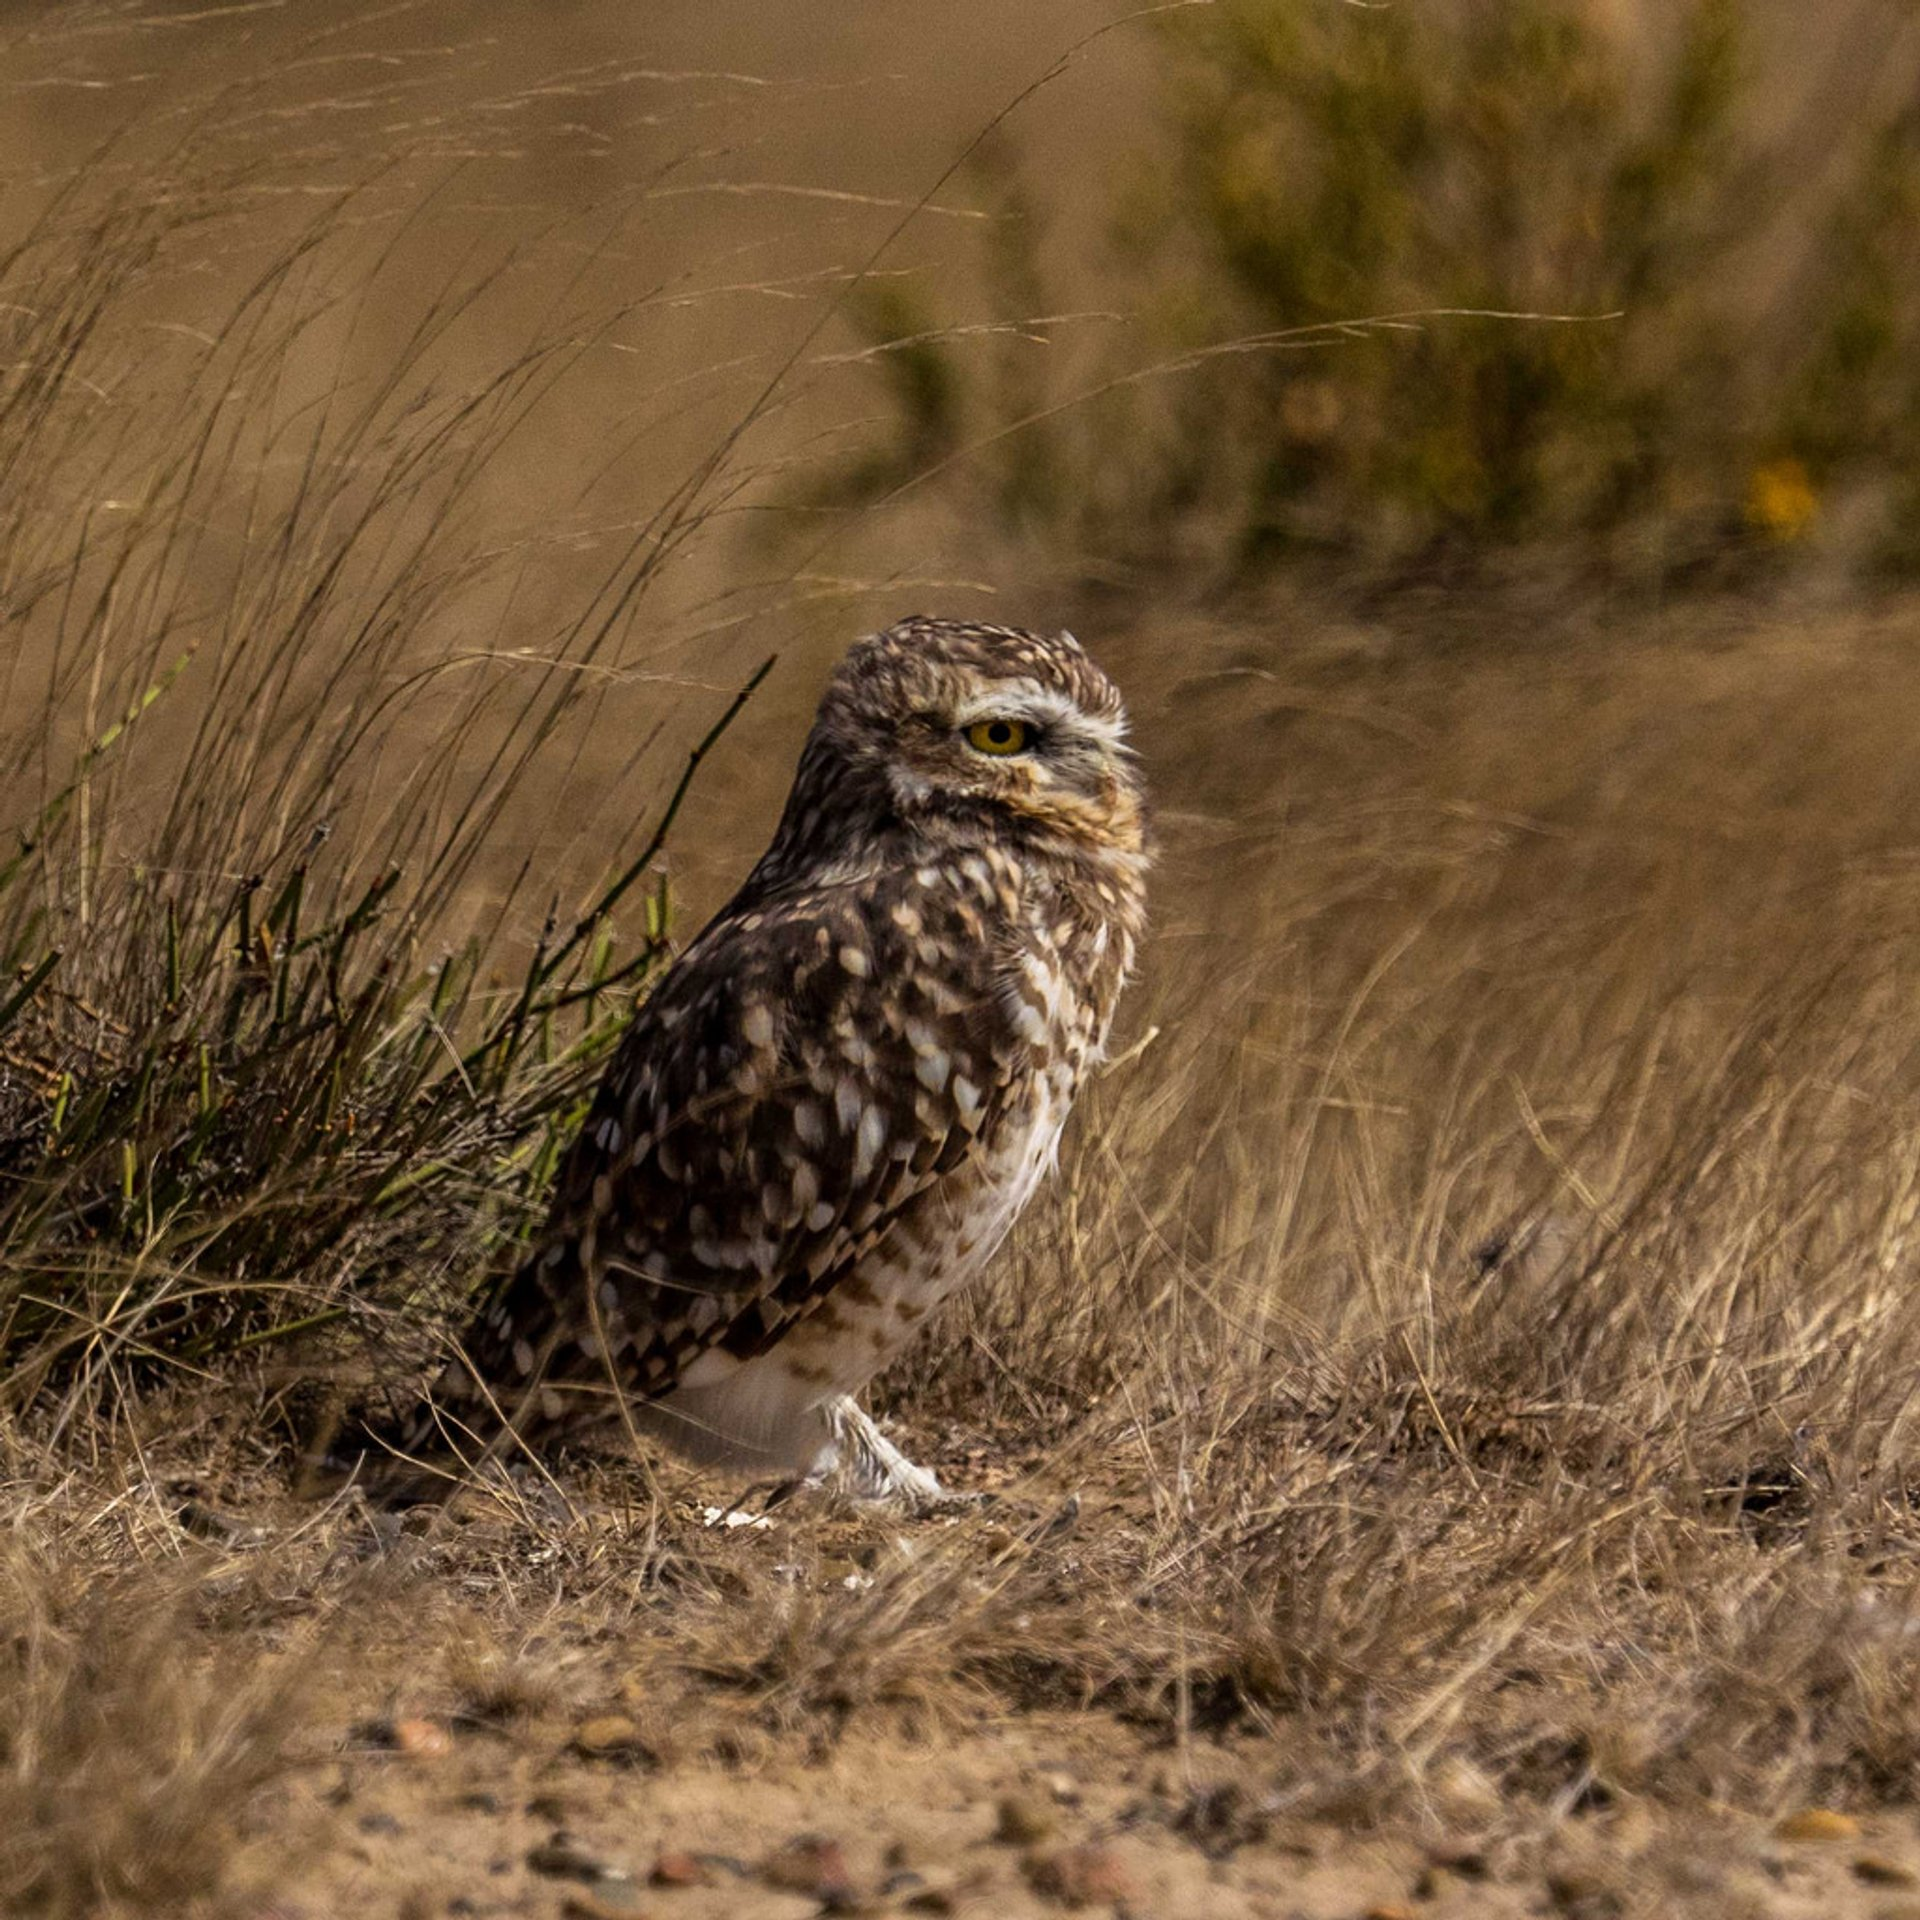 Burrowing Owl Nesting Season in Argentina - Best Season 2020